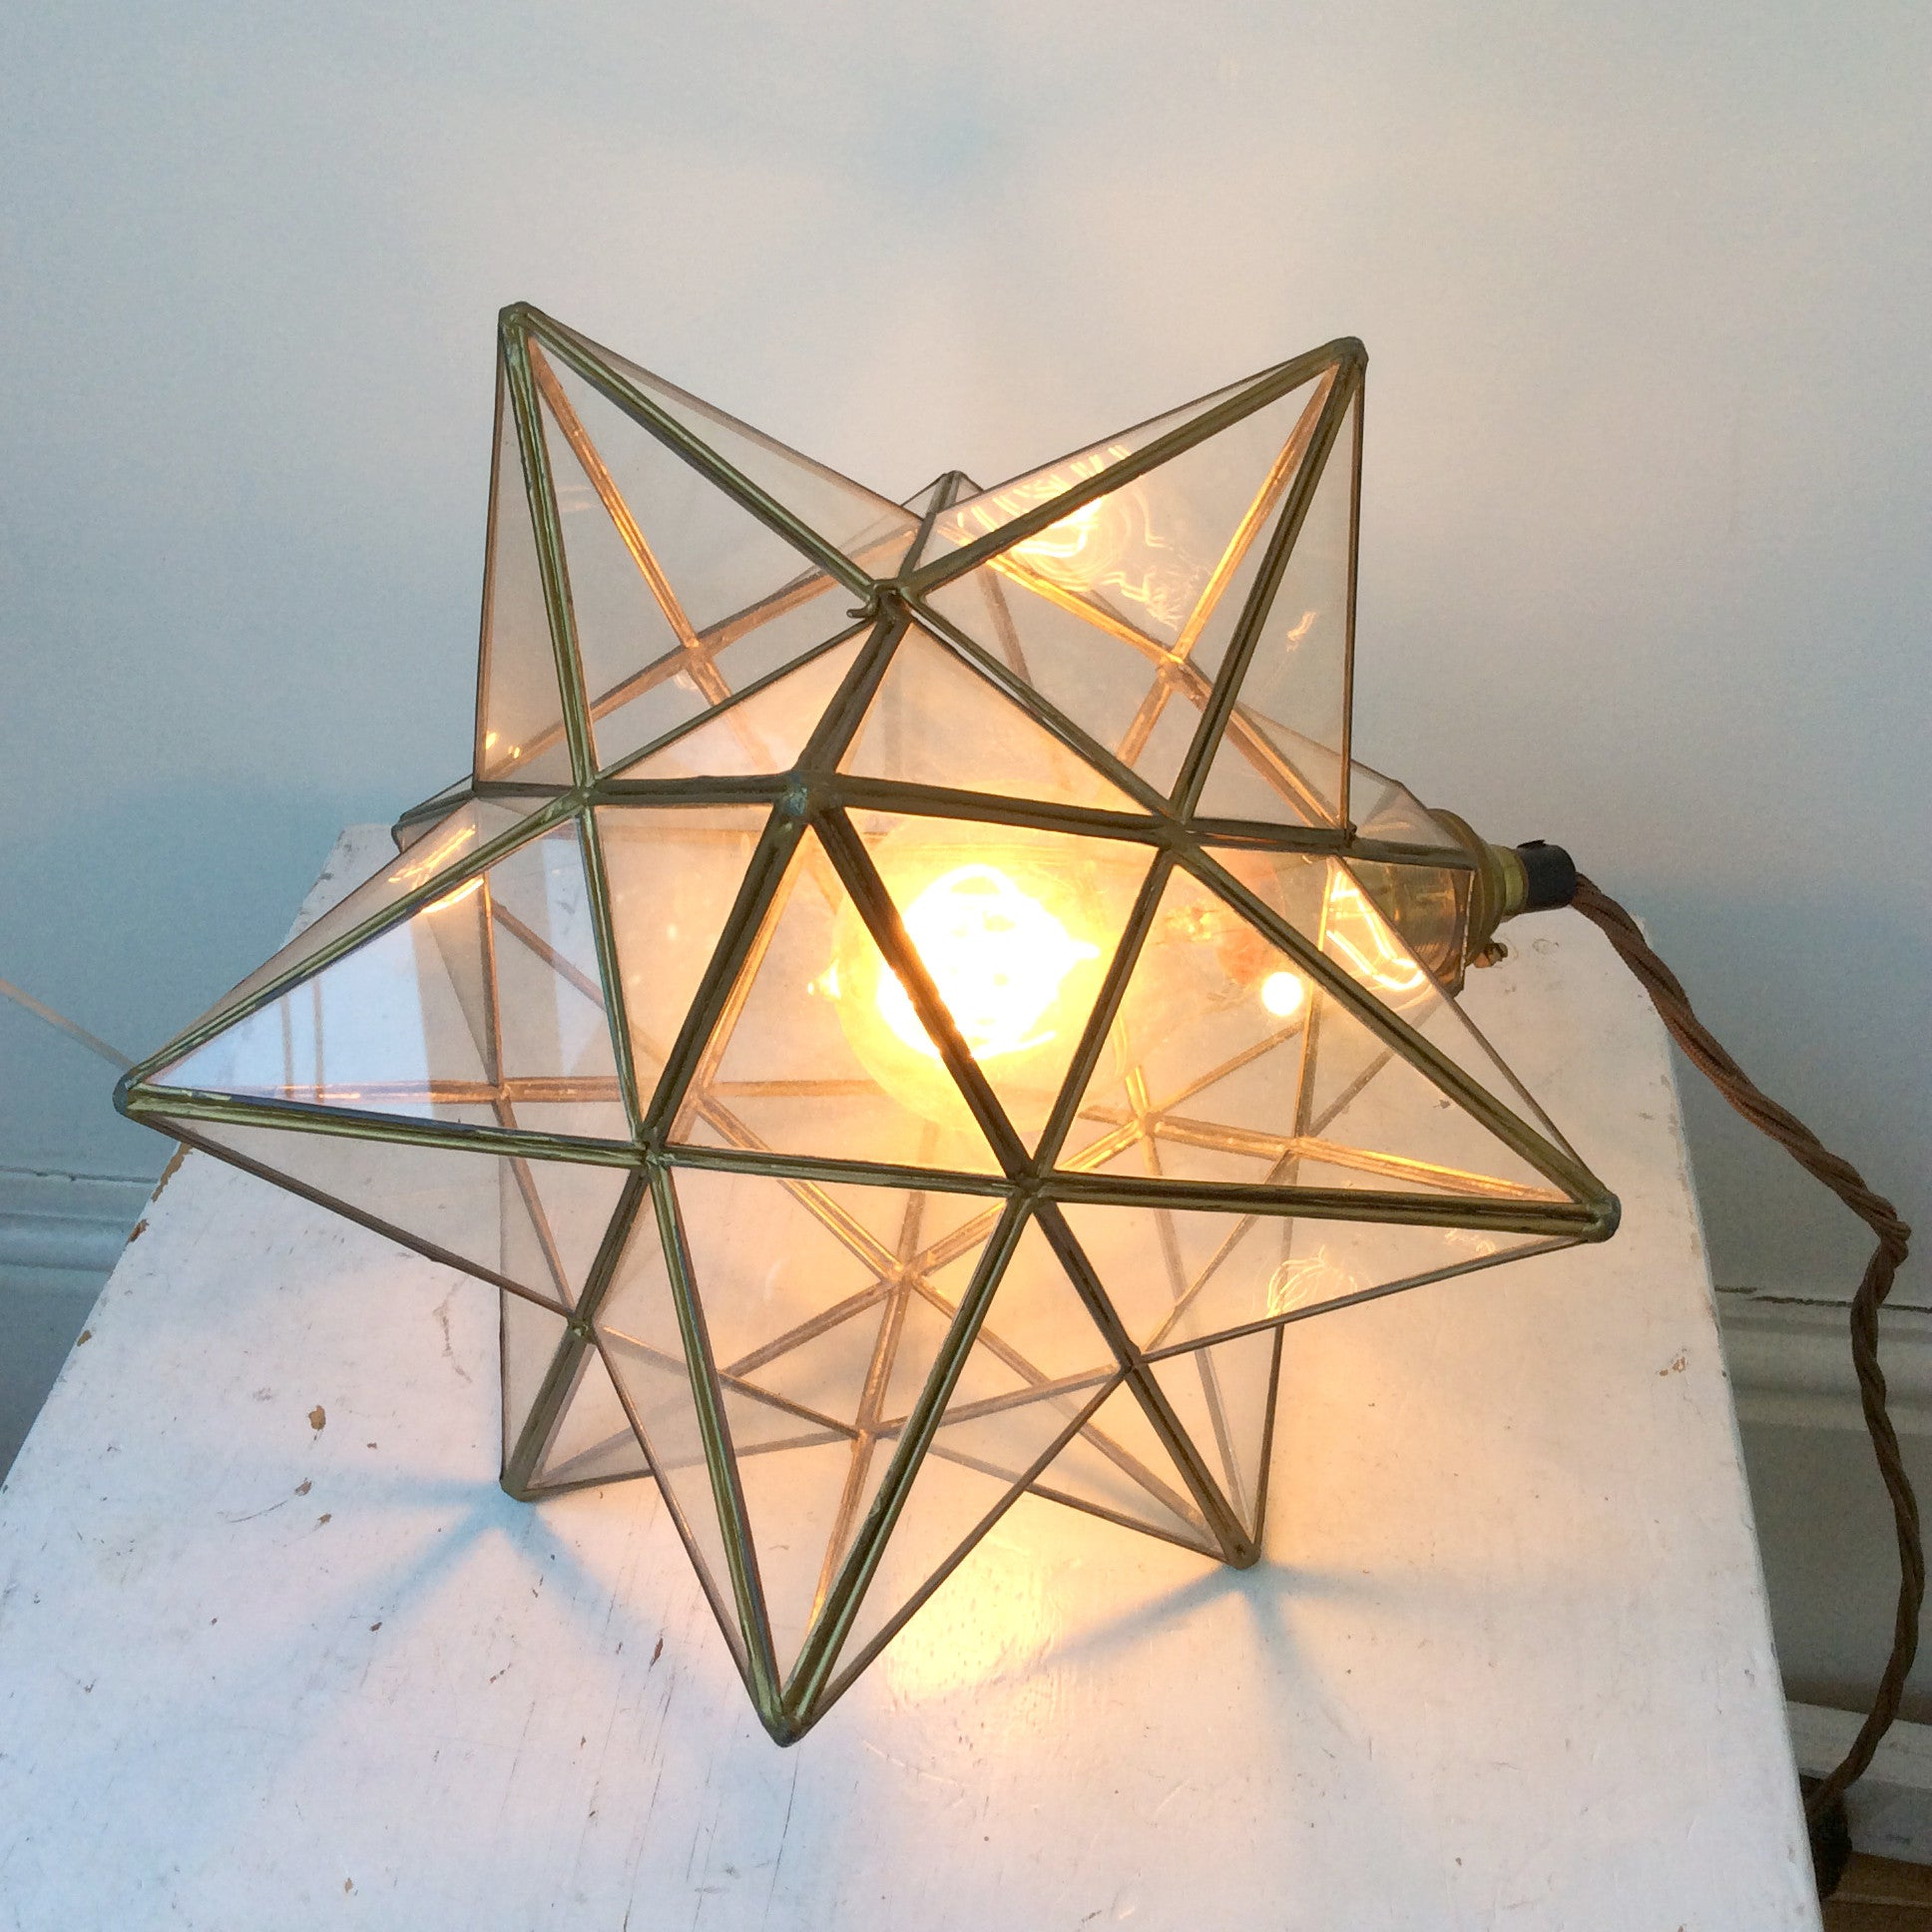 ANTIQUE STAR LANTERN LAMP